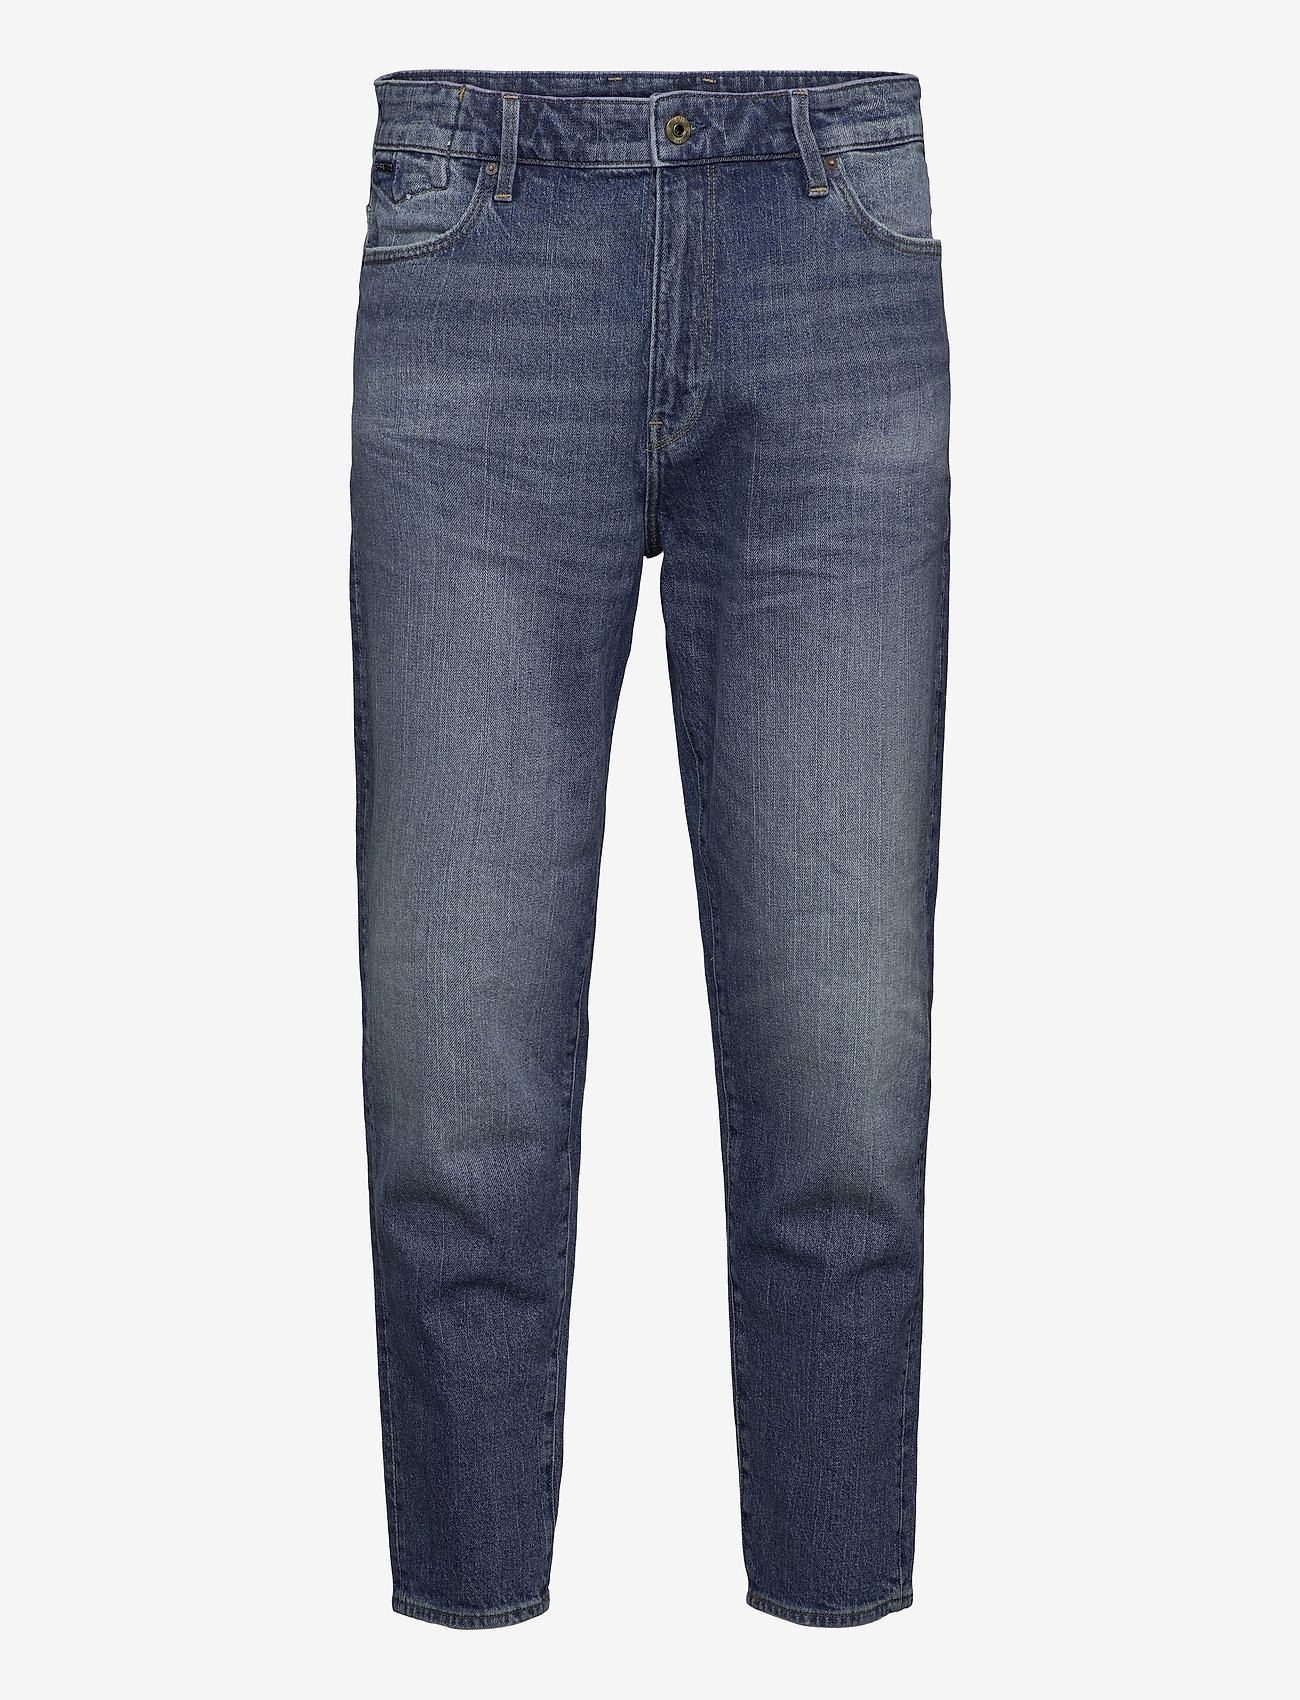 G-star RAW - Janeh Ultra High Mom Ankle Wmn - straight jeans - faded riverblue - 0